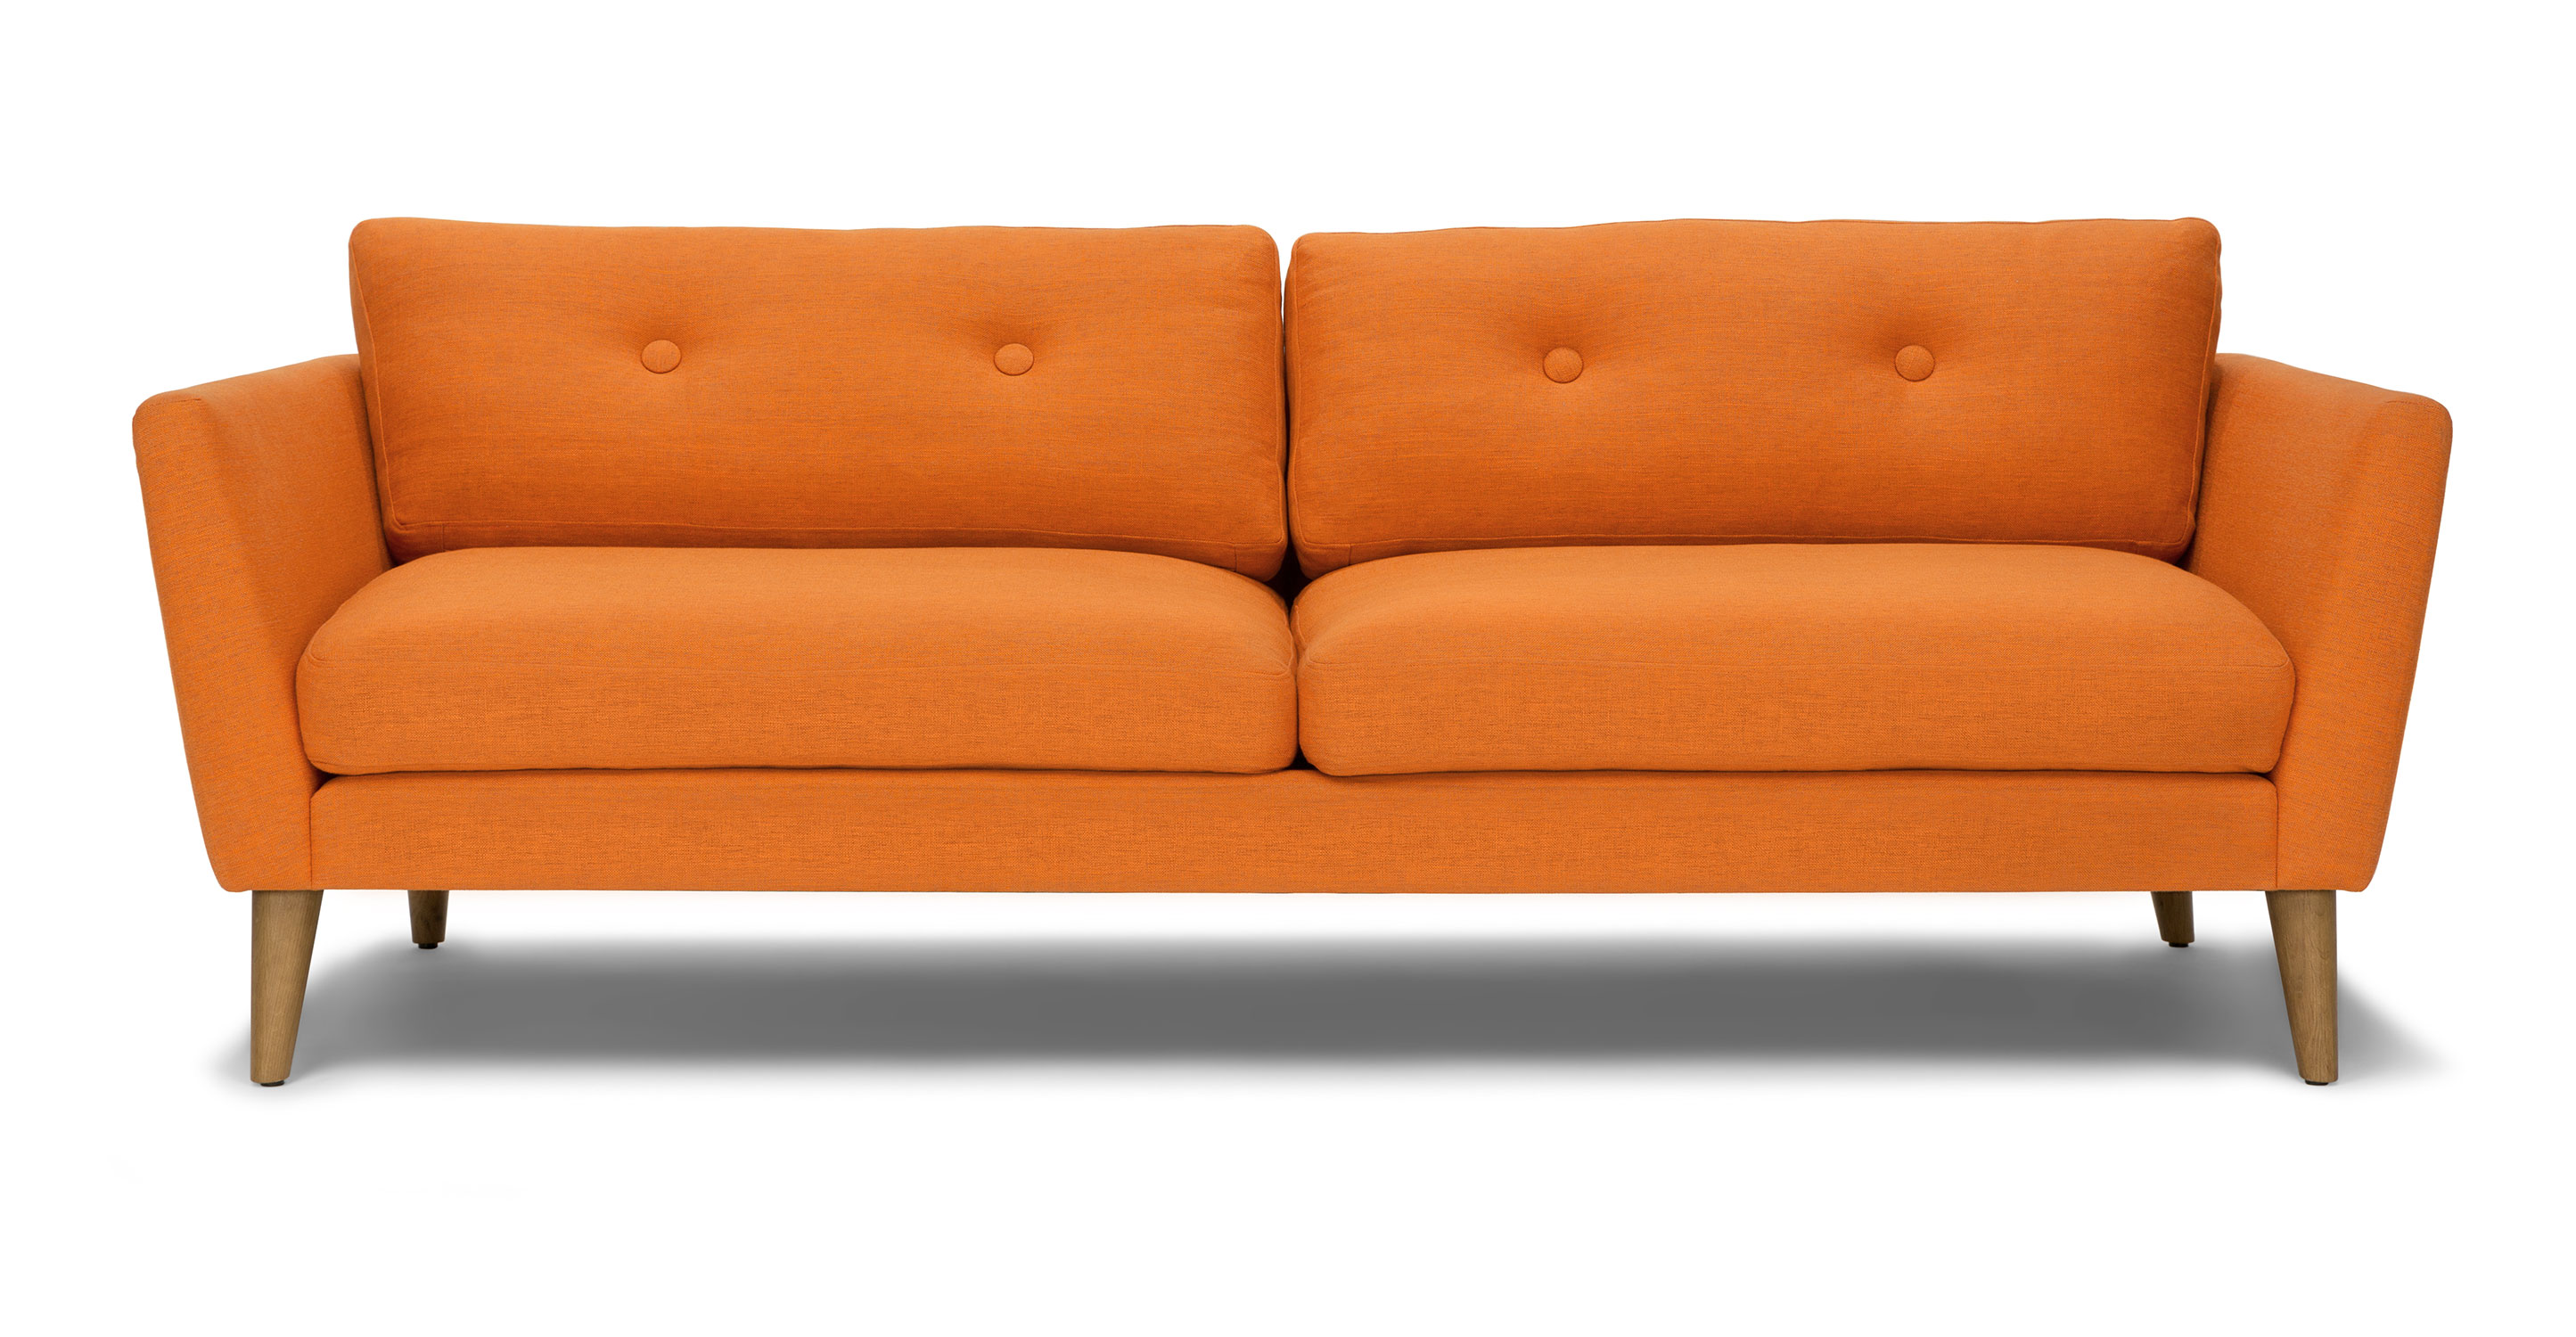 orange color sofa roma aifaresidency thesofa